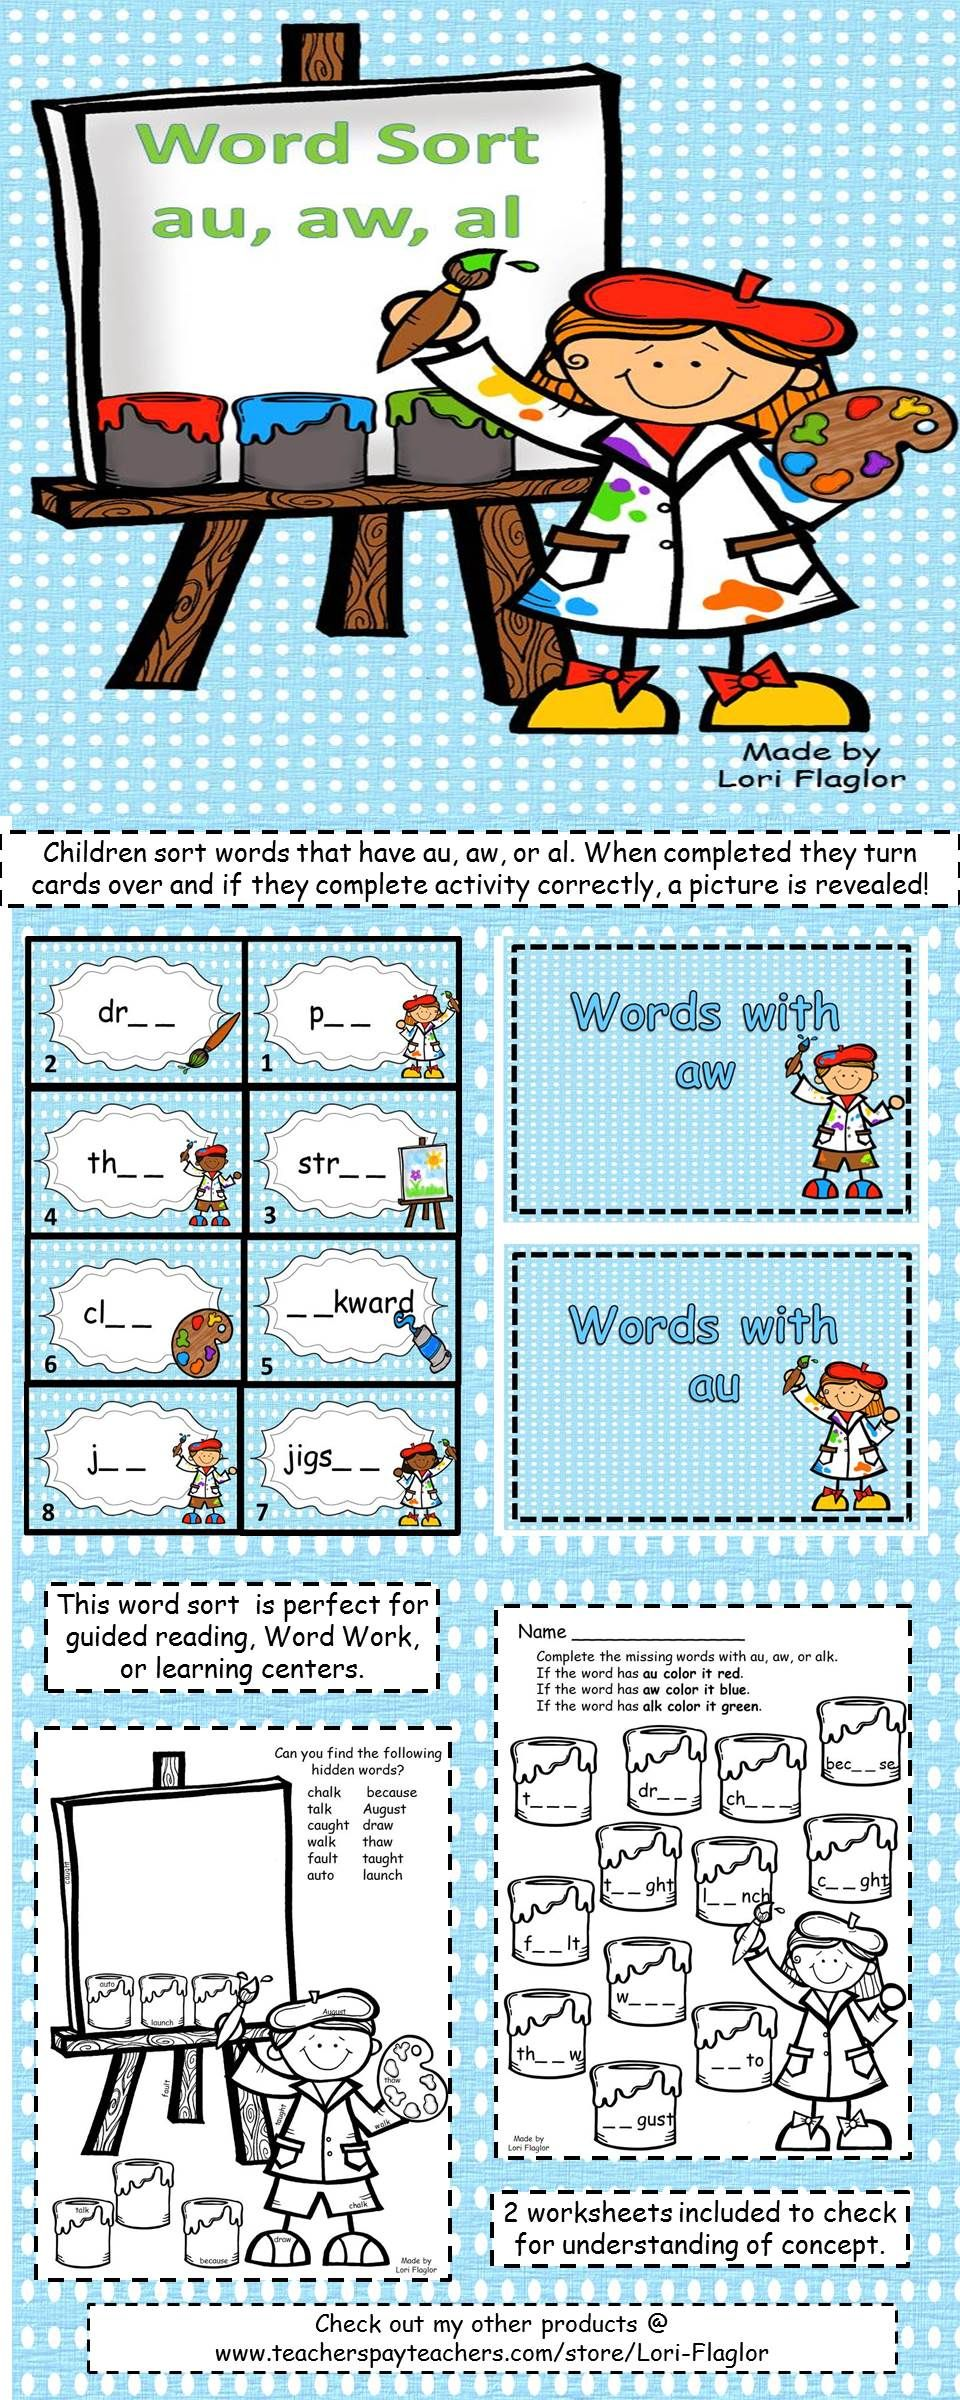 Worksheet Au Words 1000 images about au aw words on pinterest astronauts student and literacy centers